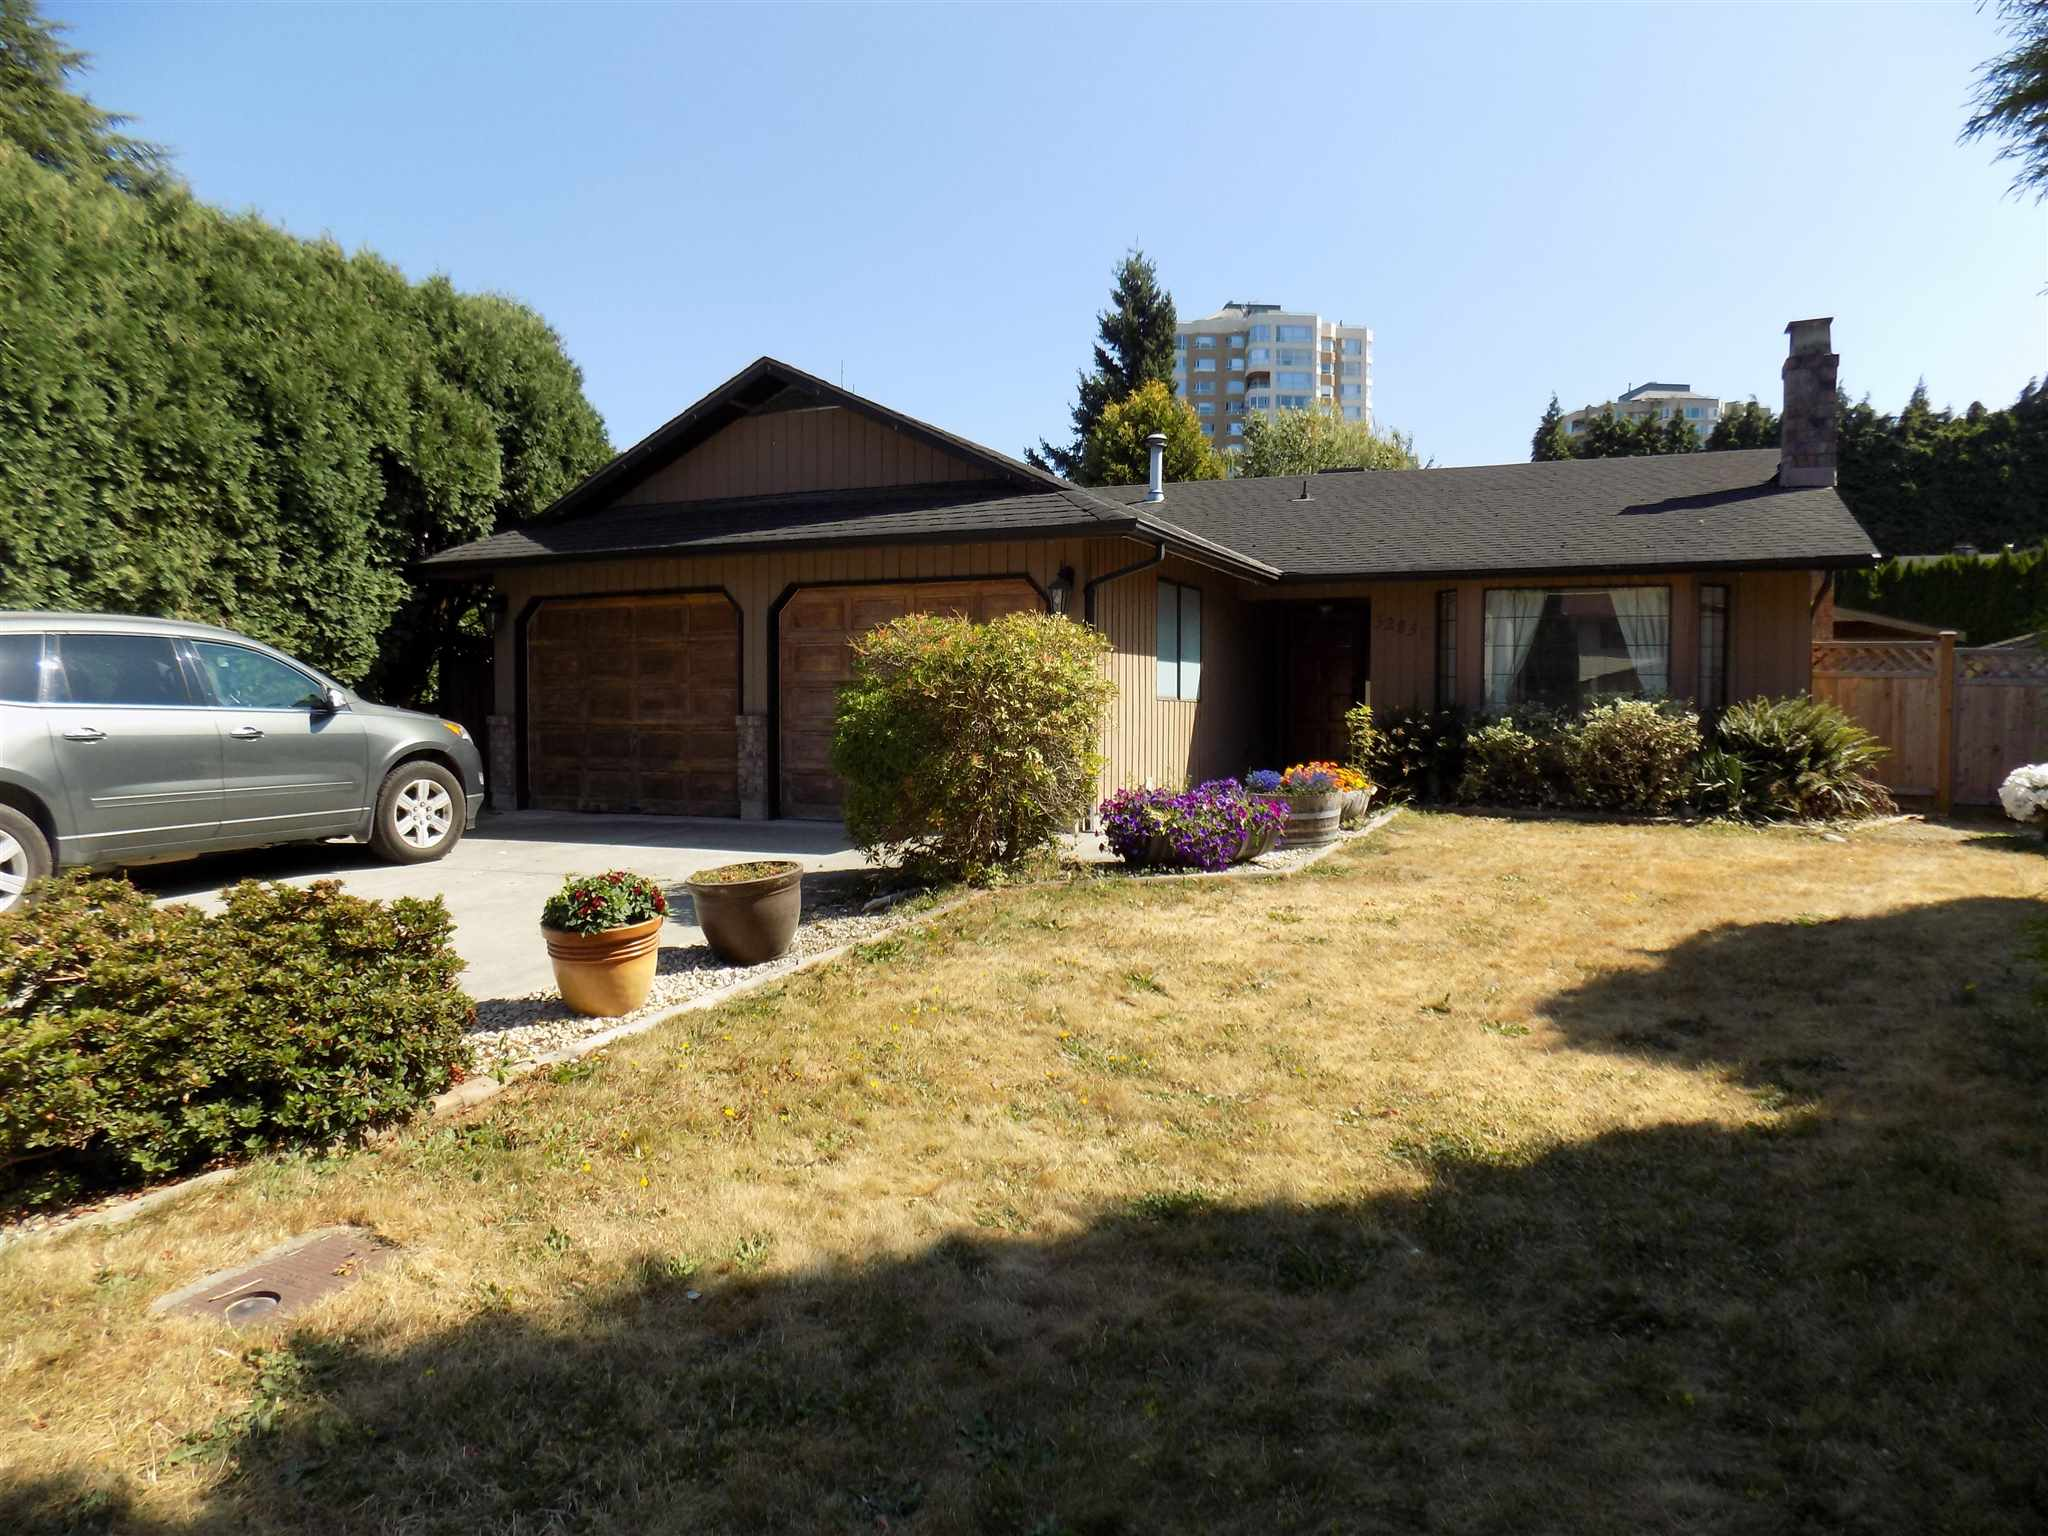 32836 CAPILANO PLACE - Central Abbotsford House/Single Family for sale, 3 Bedrooms (R2605248) - #1